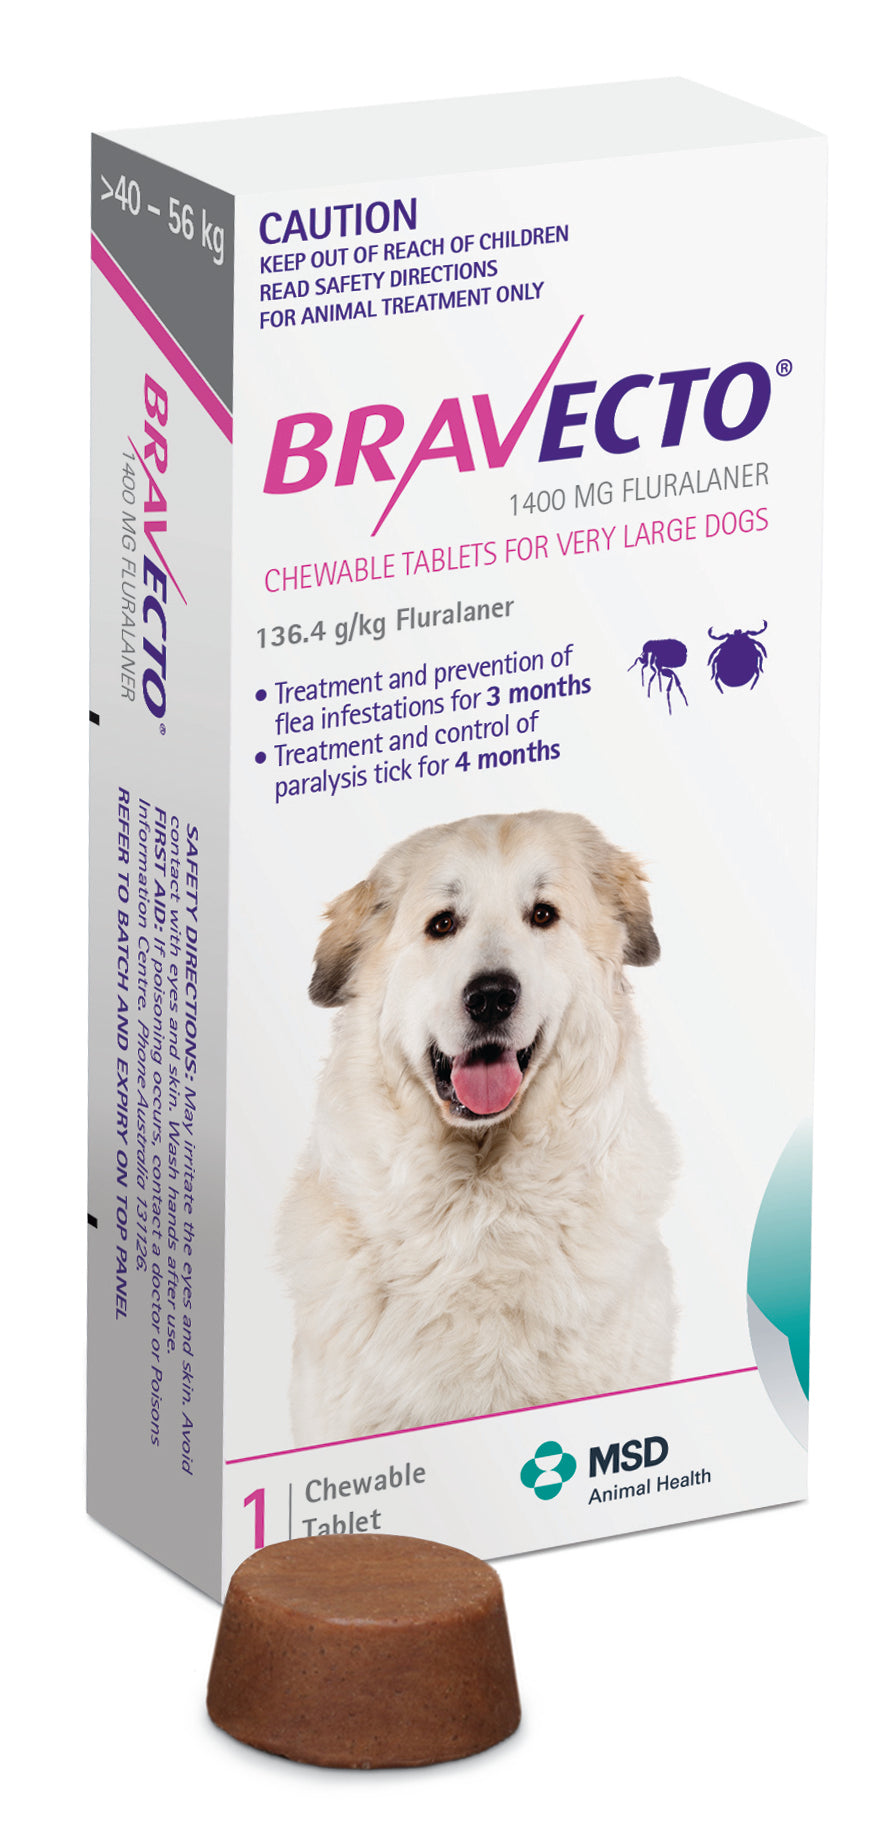 Bravecto Chewables Flea & Tick Control - Extra Large Dog (40kg to 56kg)